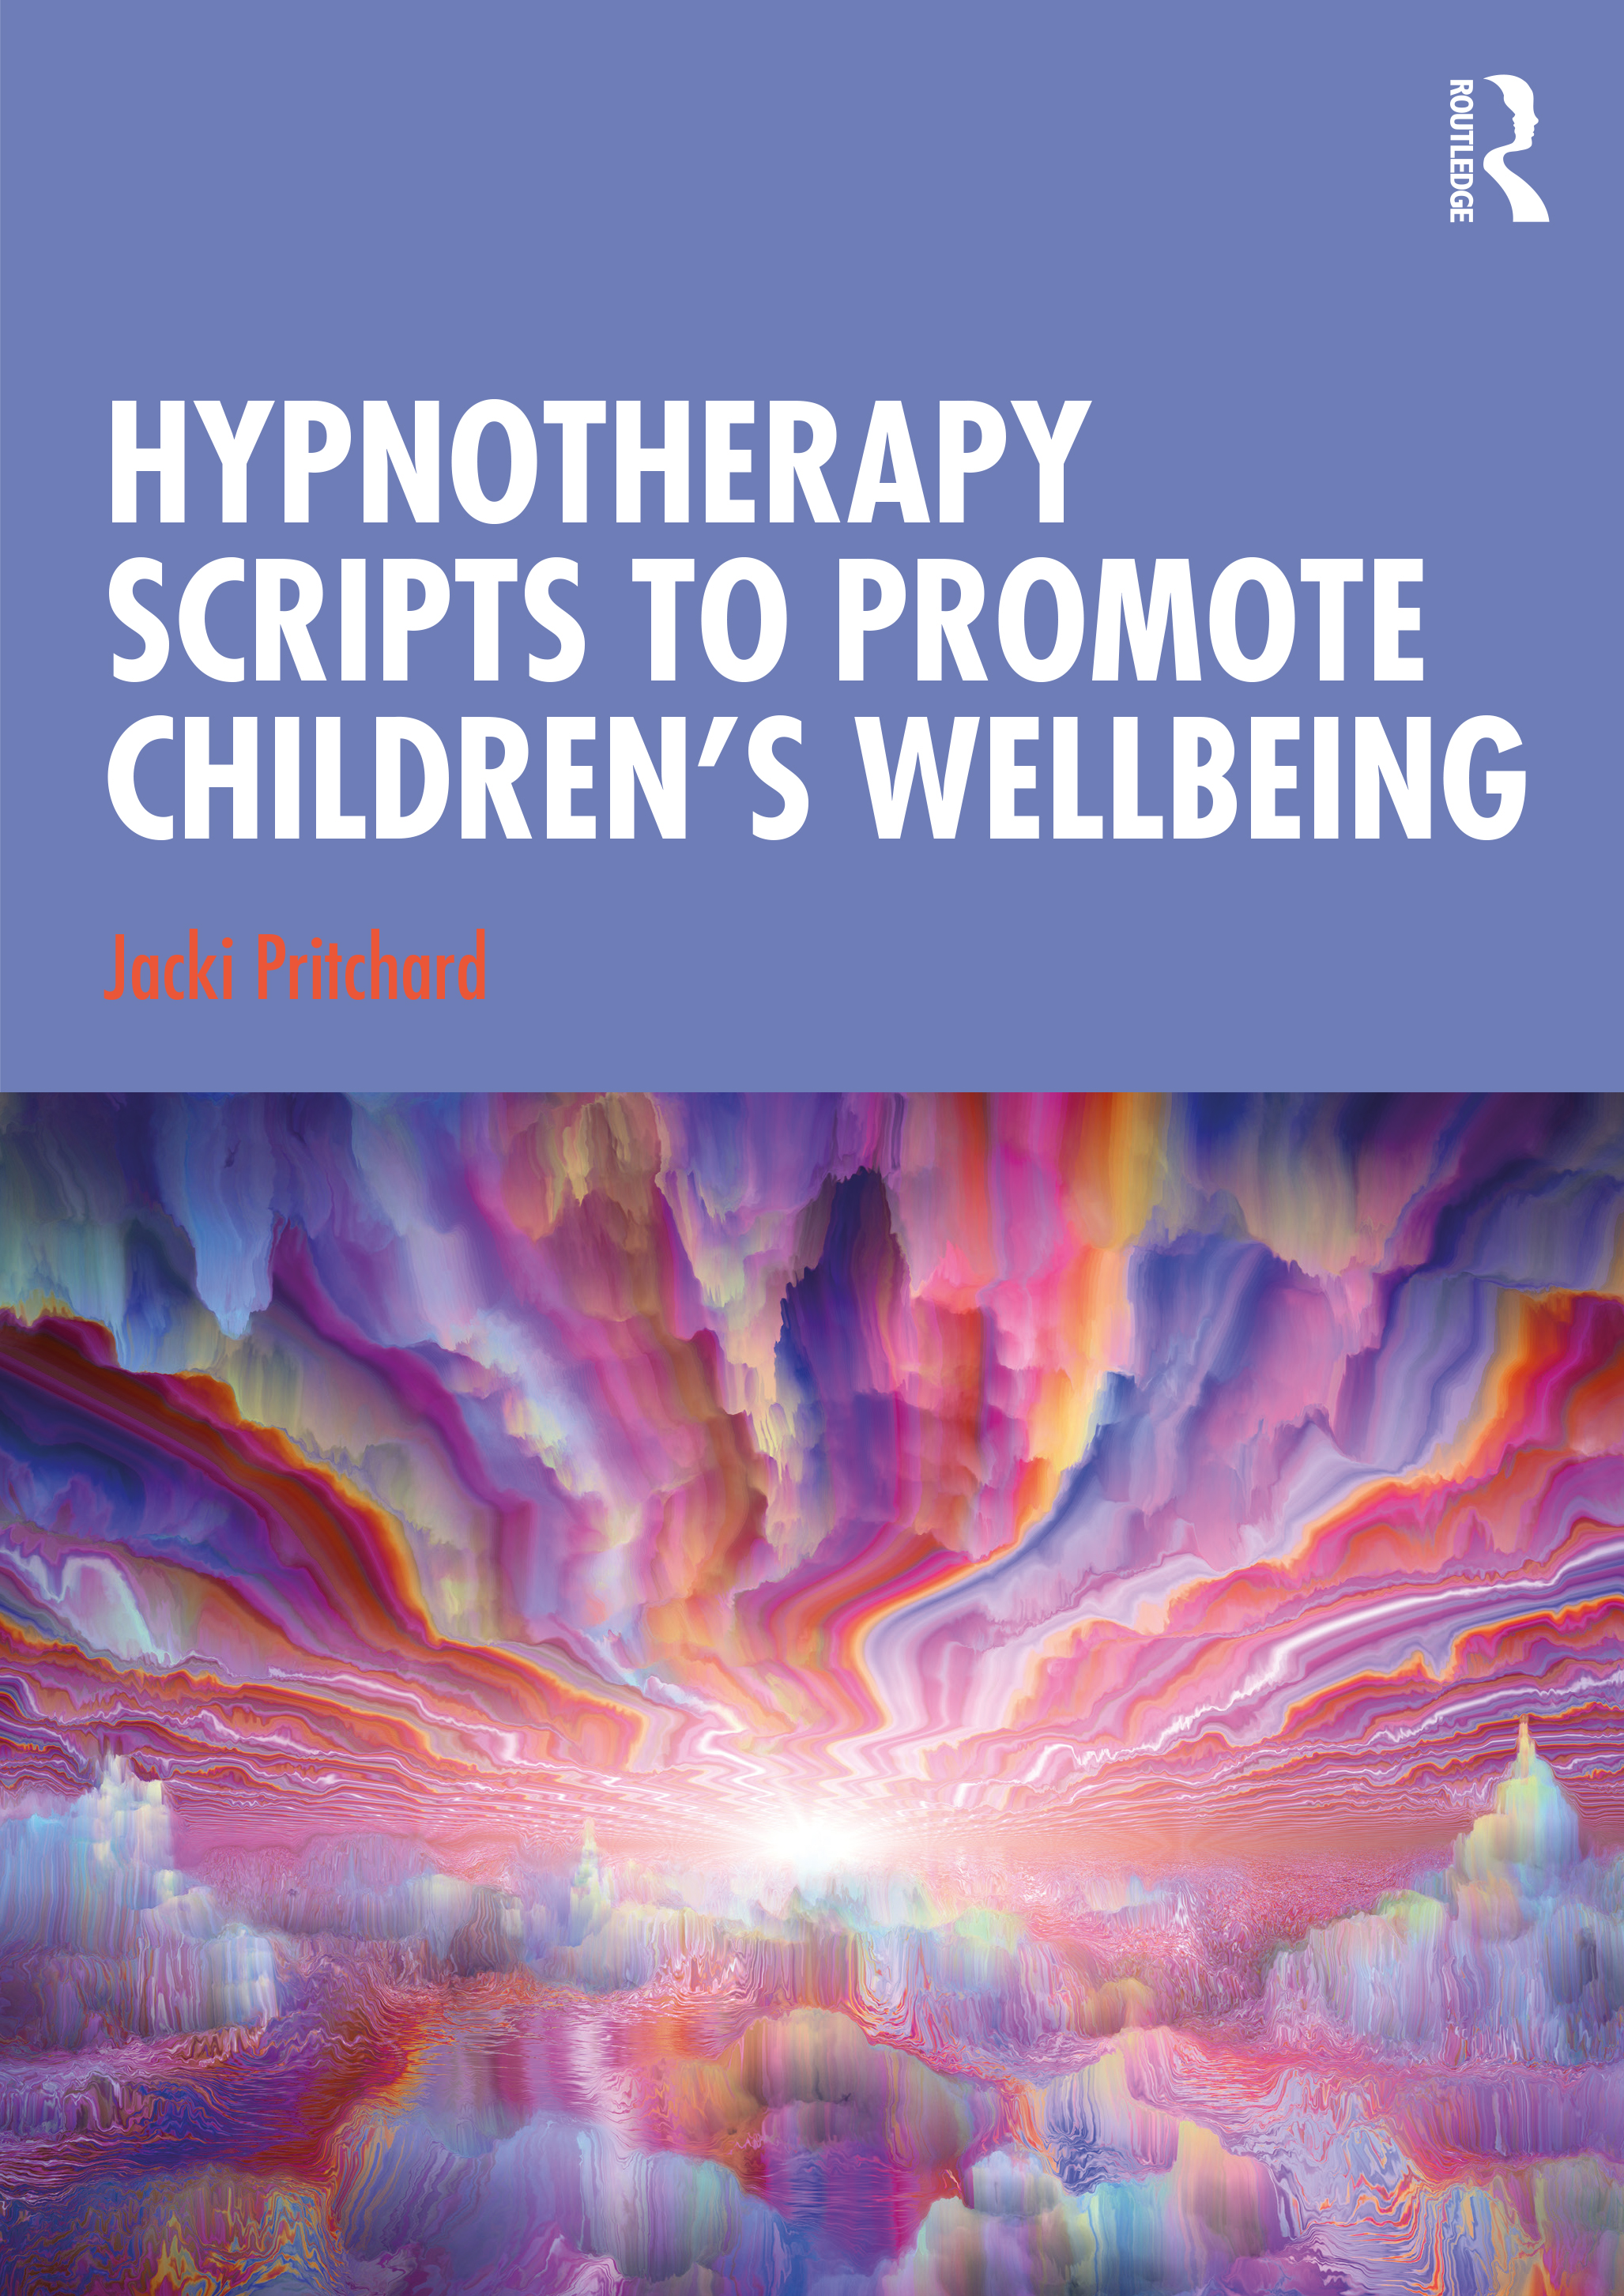 Hypnotherapy Scripts to Promote Children's Wellbeing